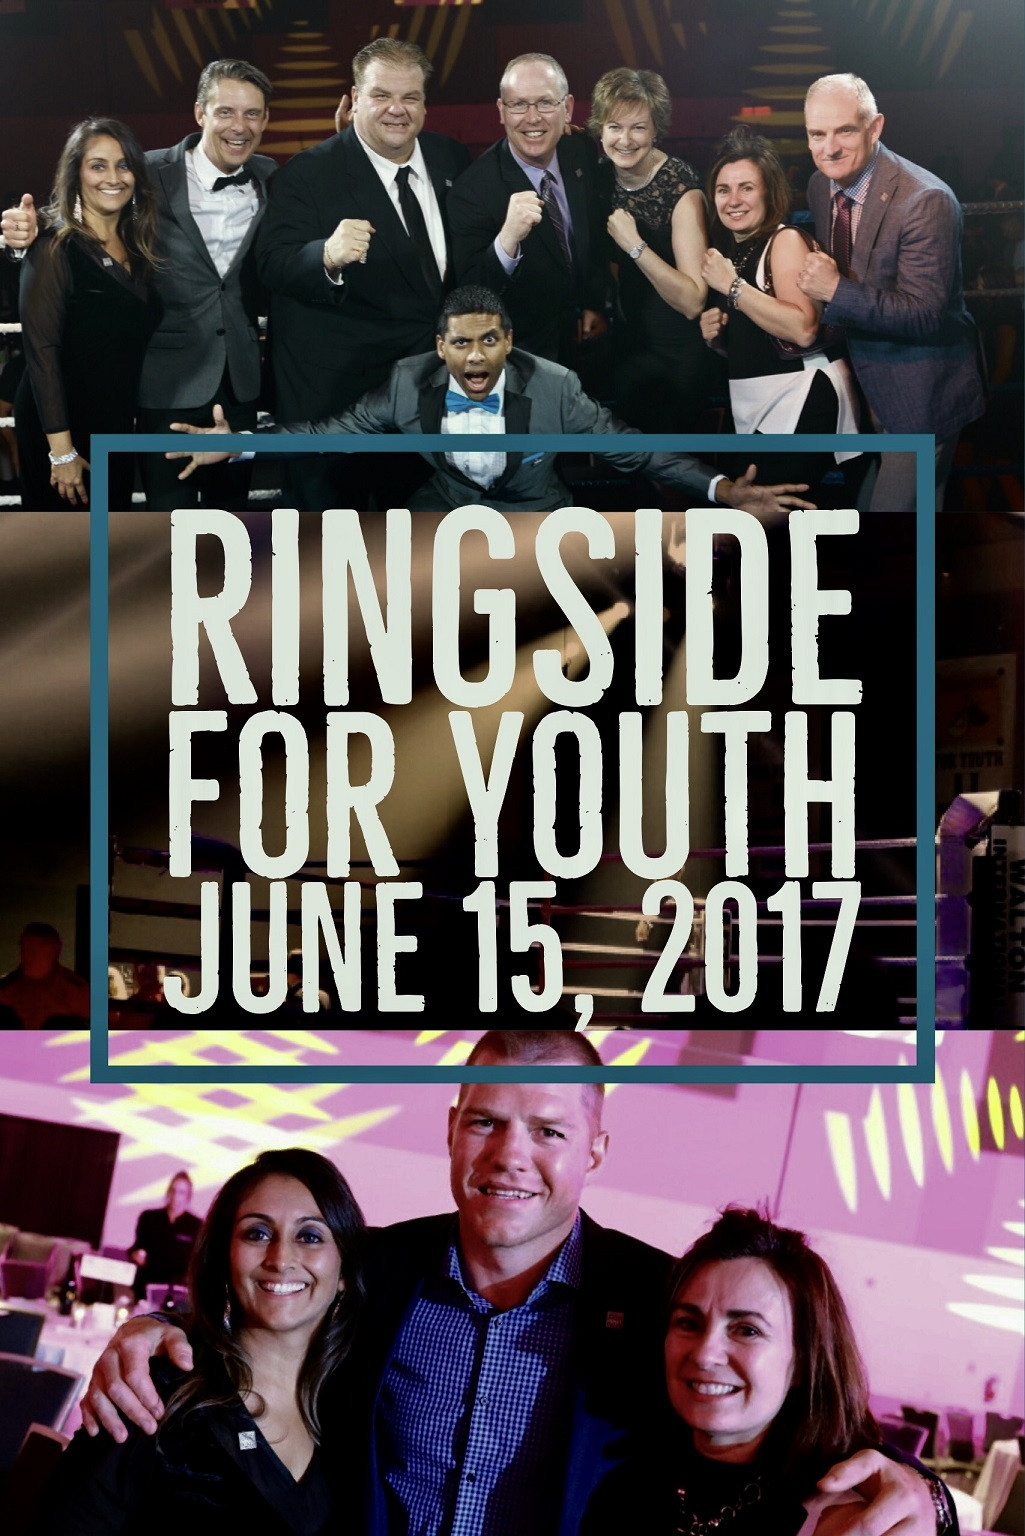 Ringside for Youth 2017